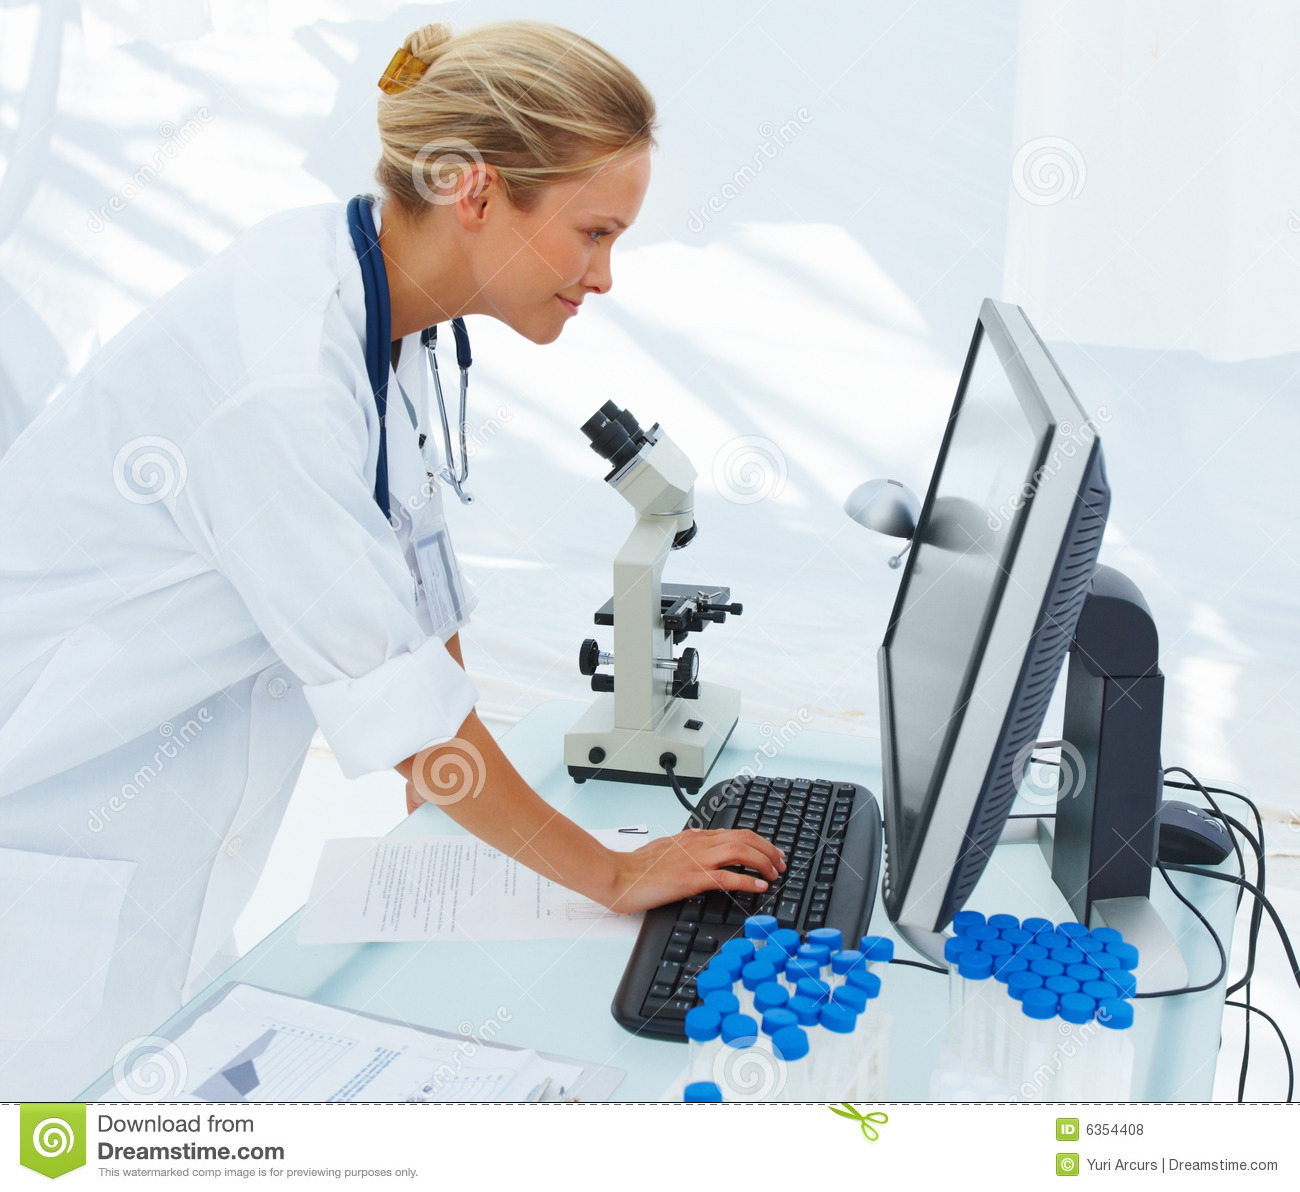 ... Stock Photos: Young female researcher using computer. Image: 6354408